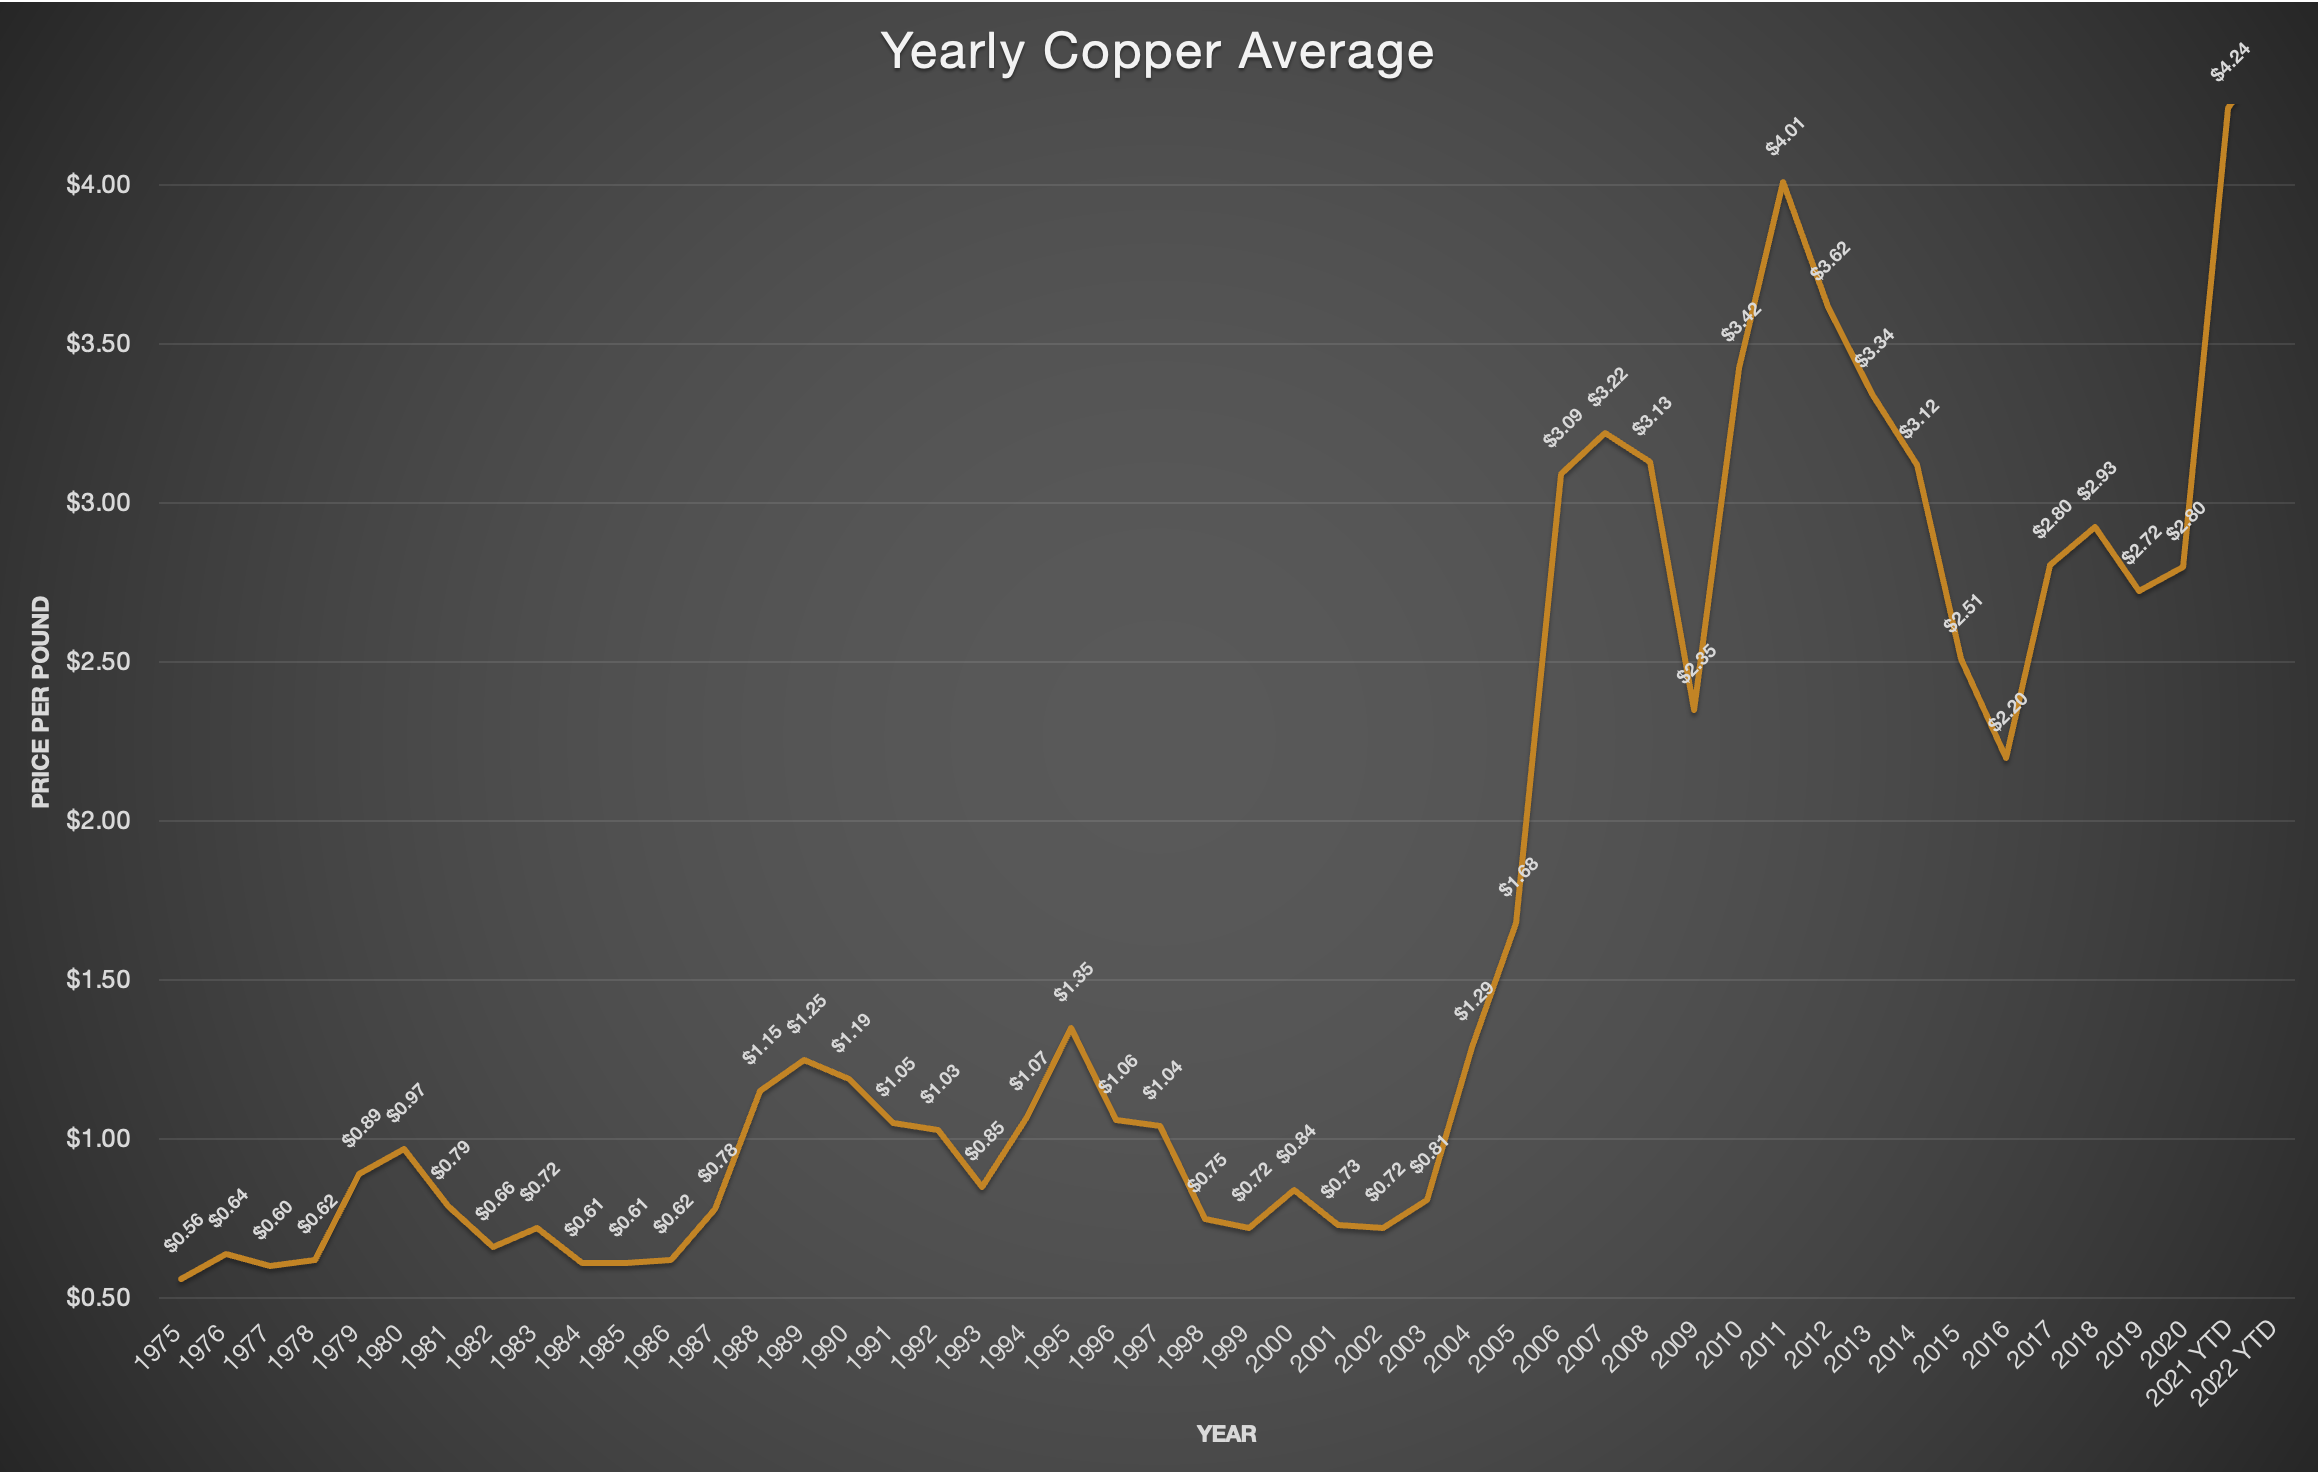 Yearly Copper Average